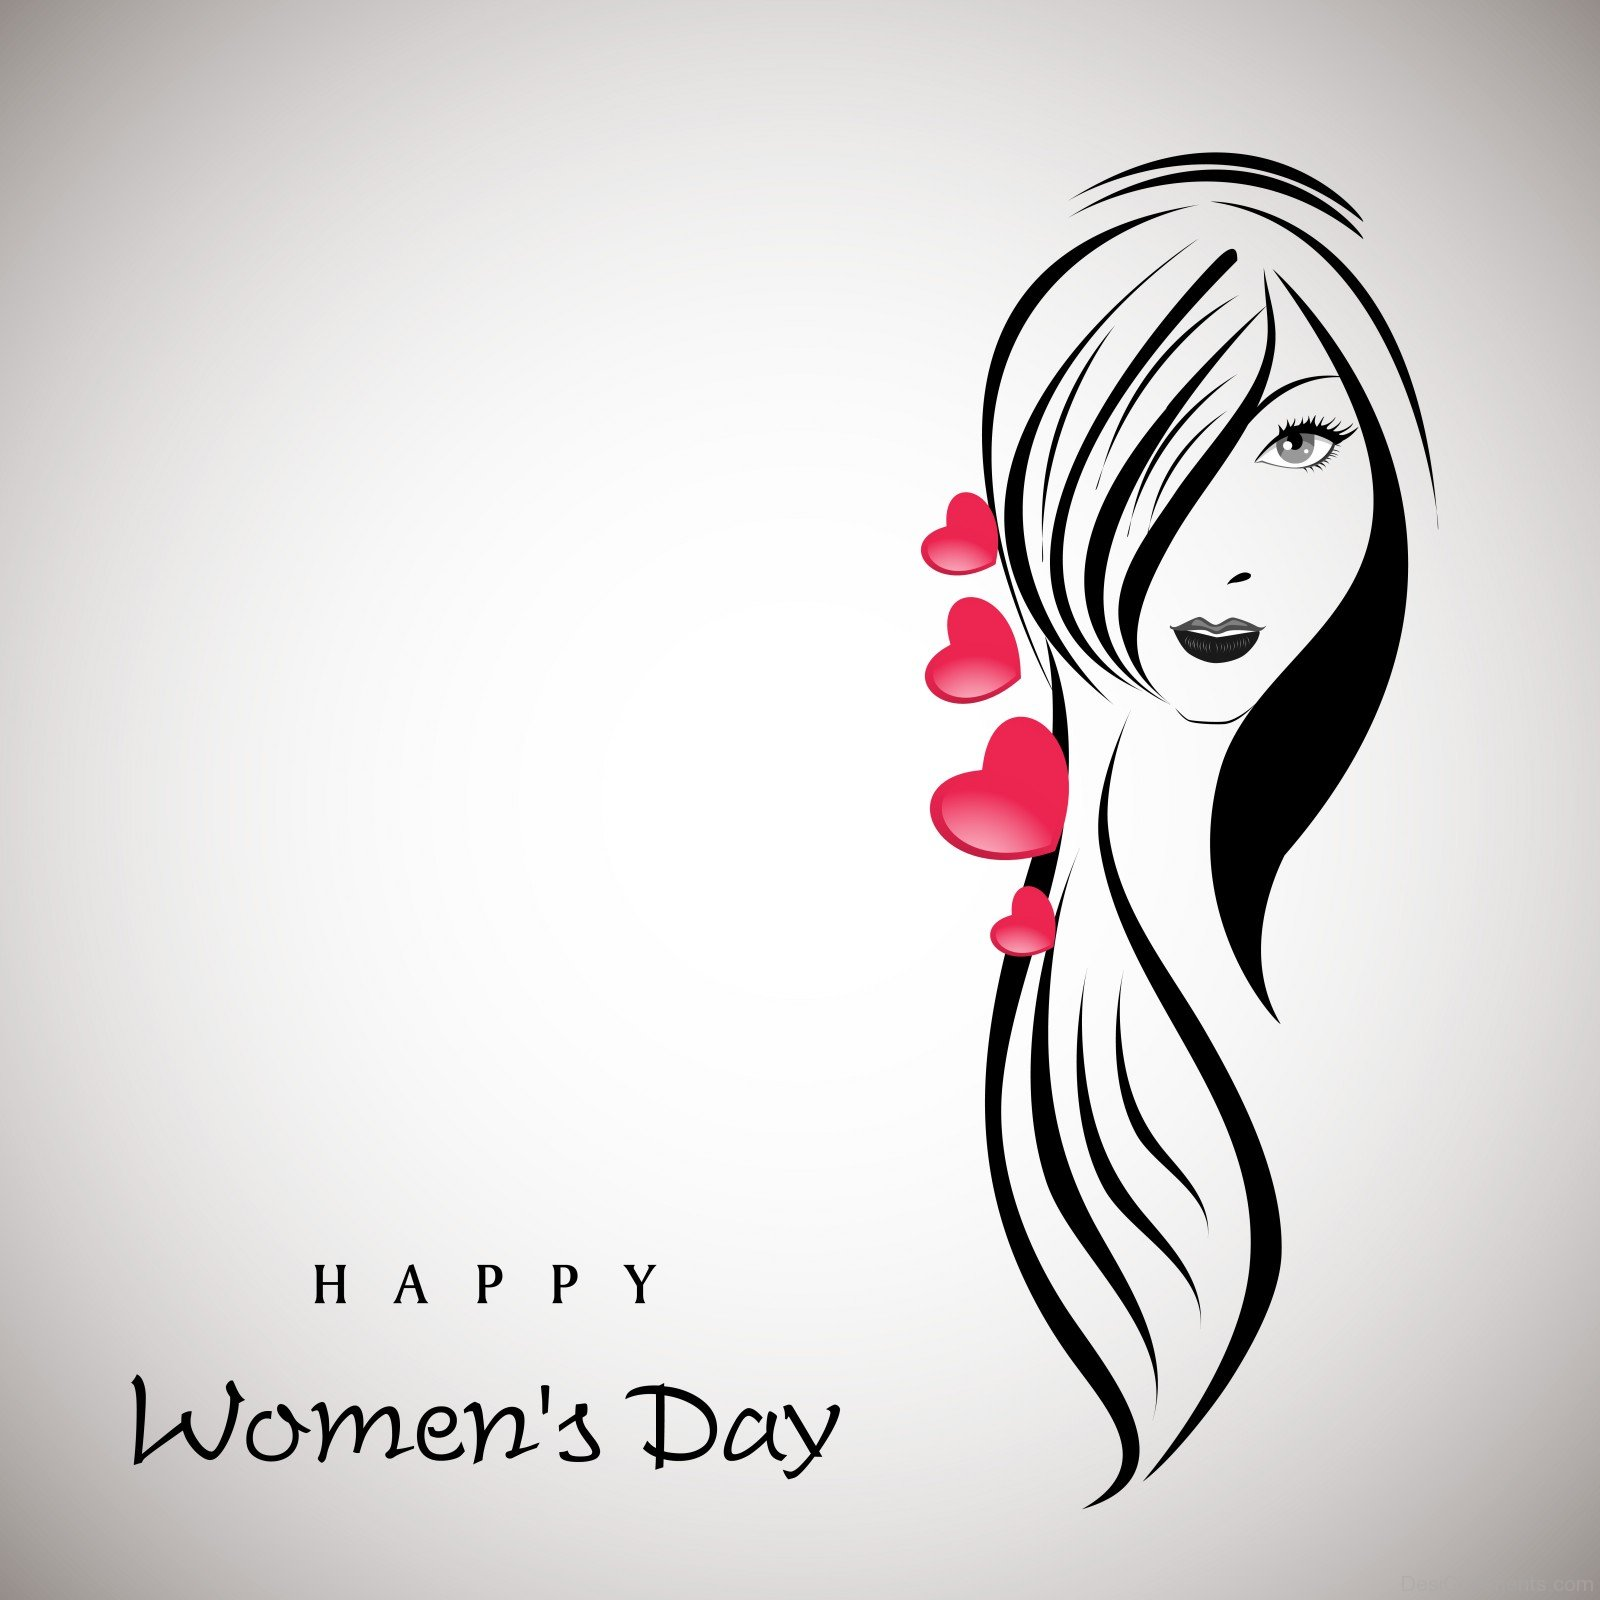 Womens Day Quotes With Images: Womens Day Pictures And Photos Facebook And WhatsApp